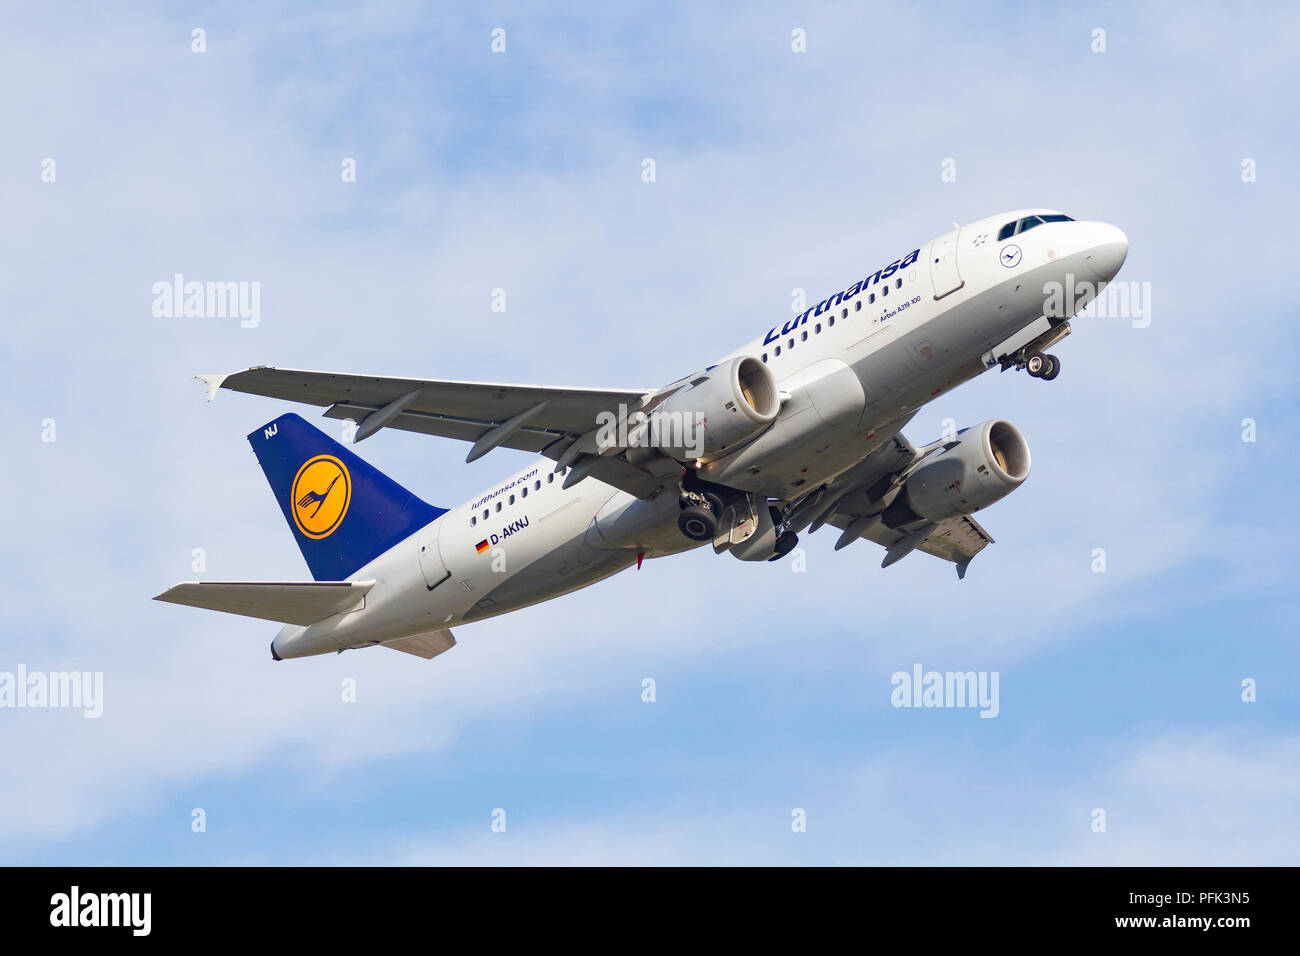 Lufthansa D-AKNJ Airbus A319-112 taking off from Manchester Airport - Stock Image